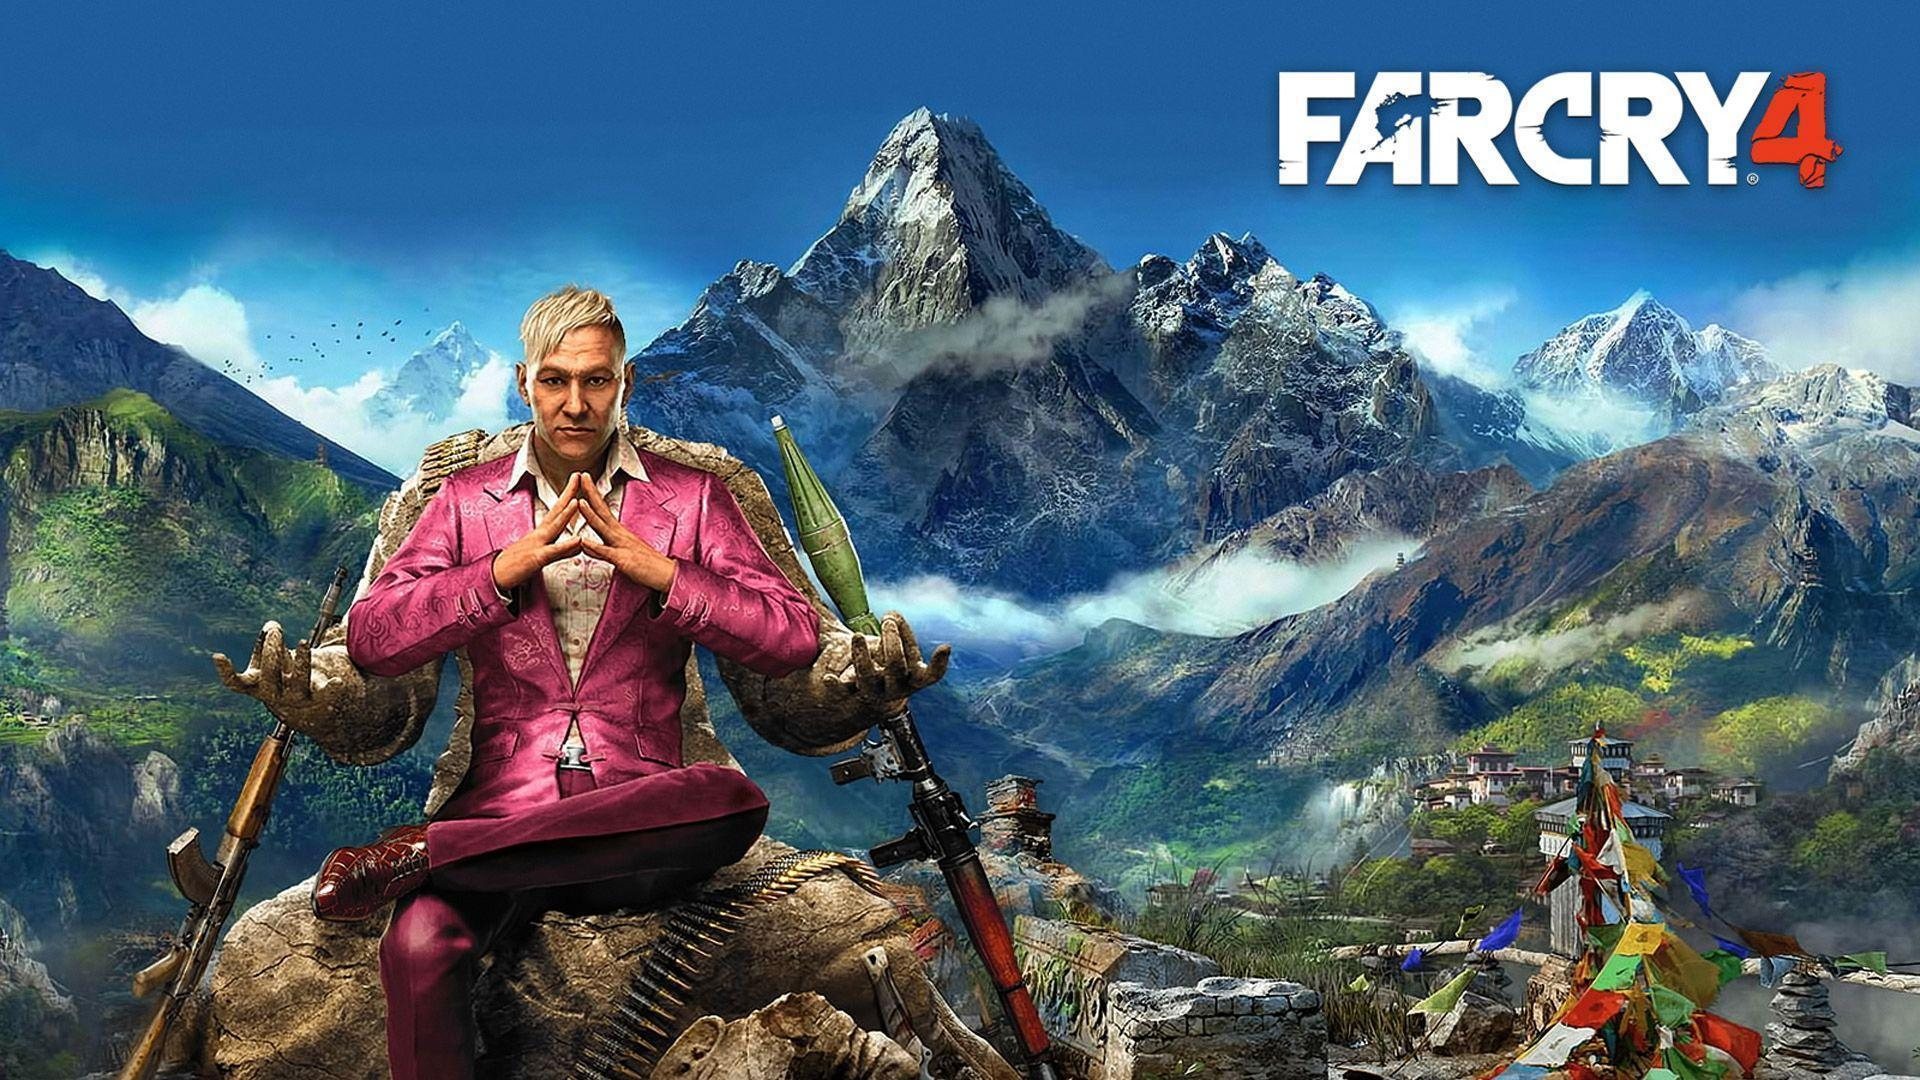 Far cry 4 wallpapers wallpaper cave - Far cry 4 wallpaper ...